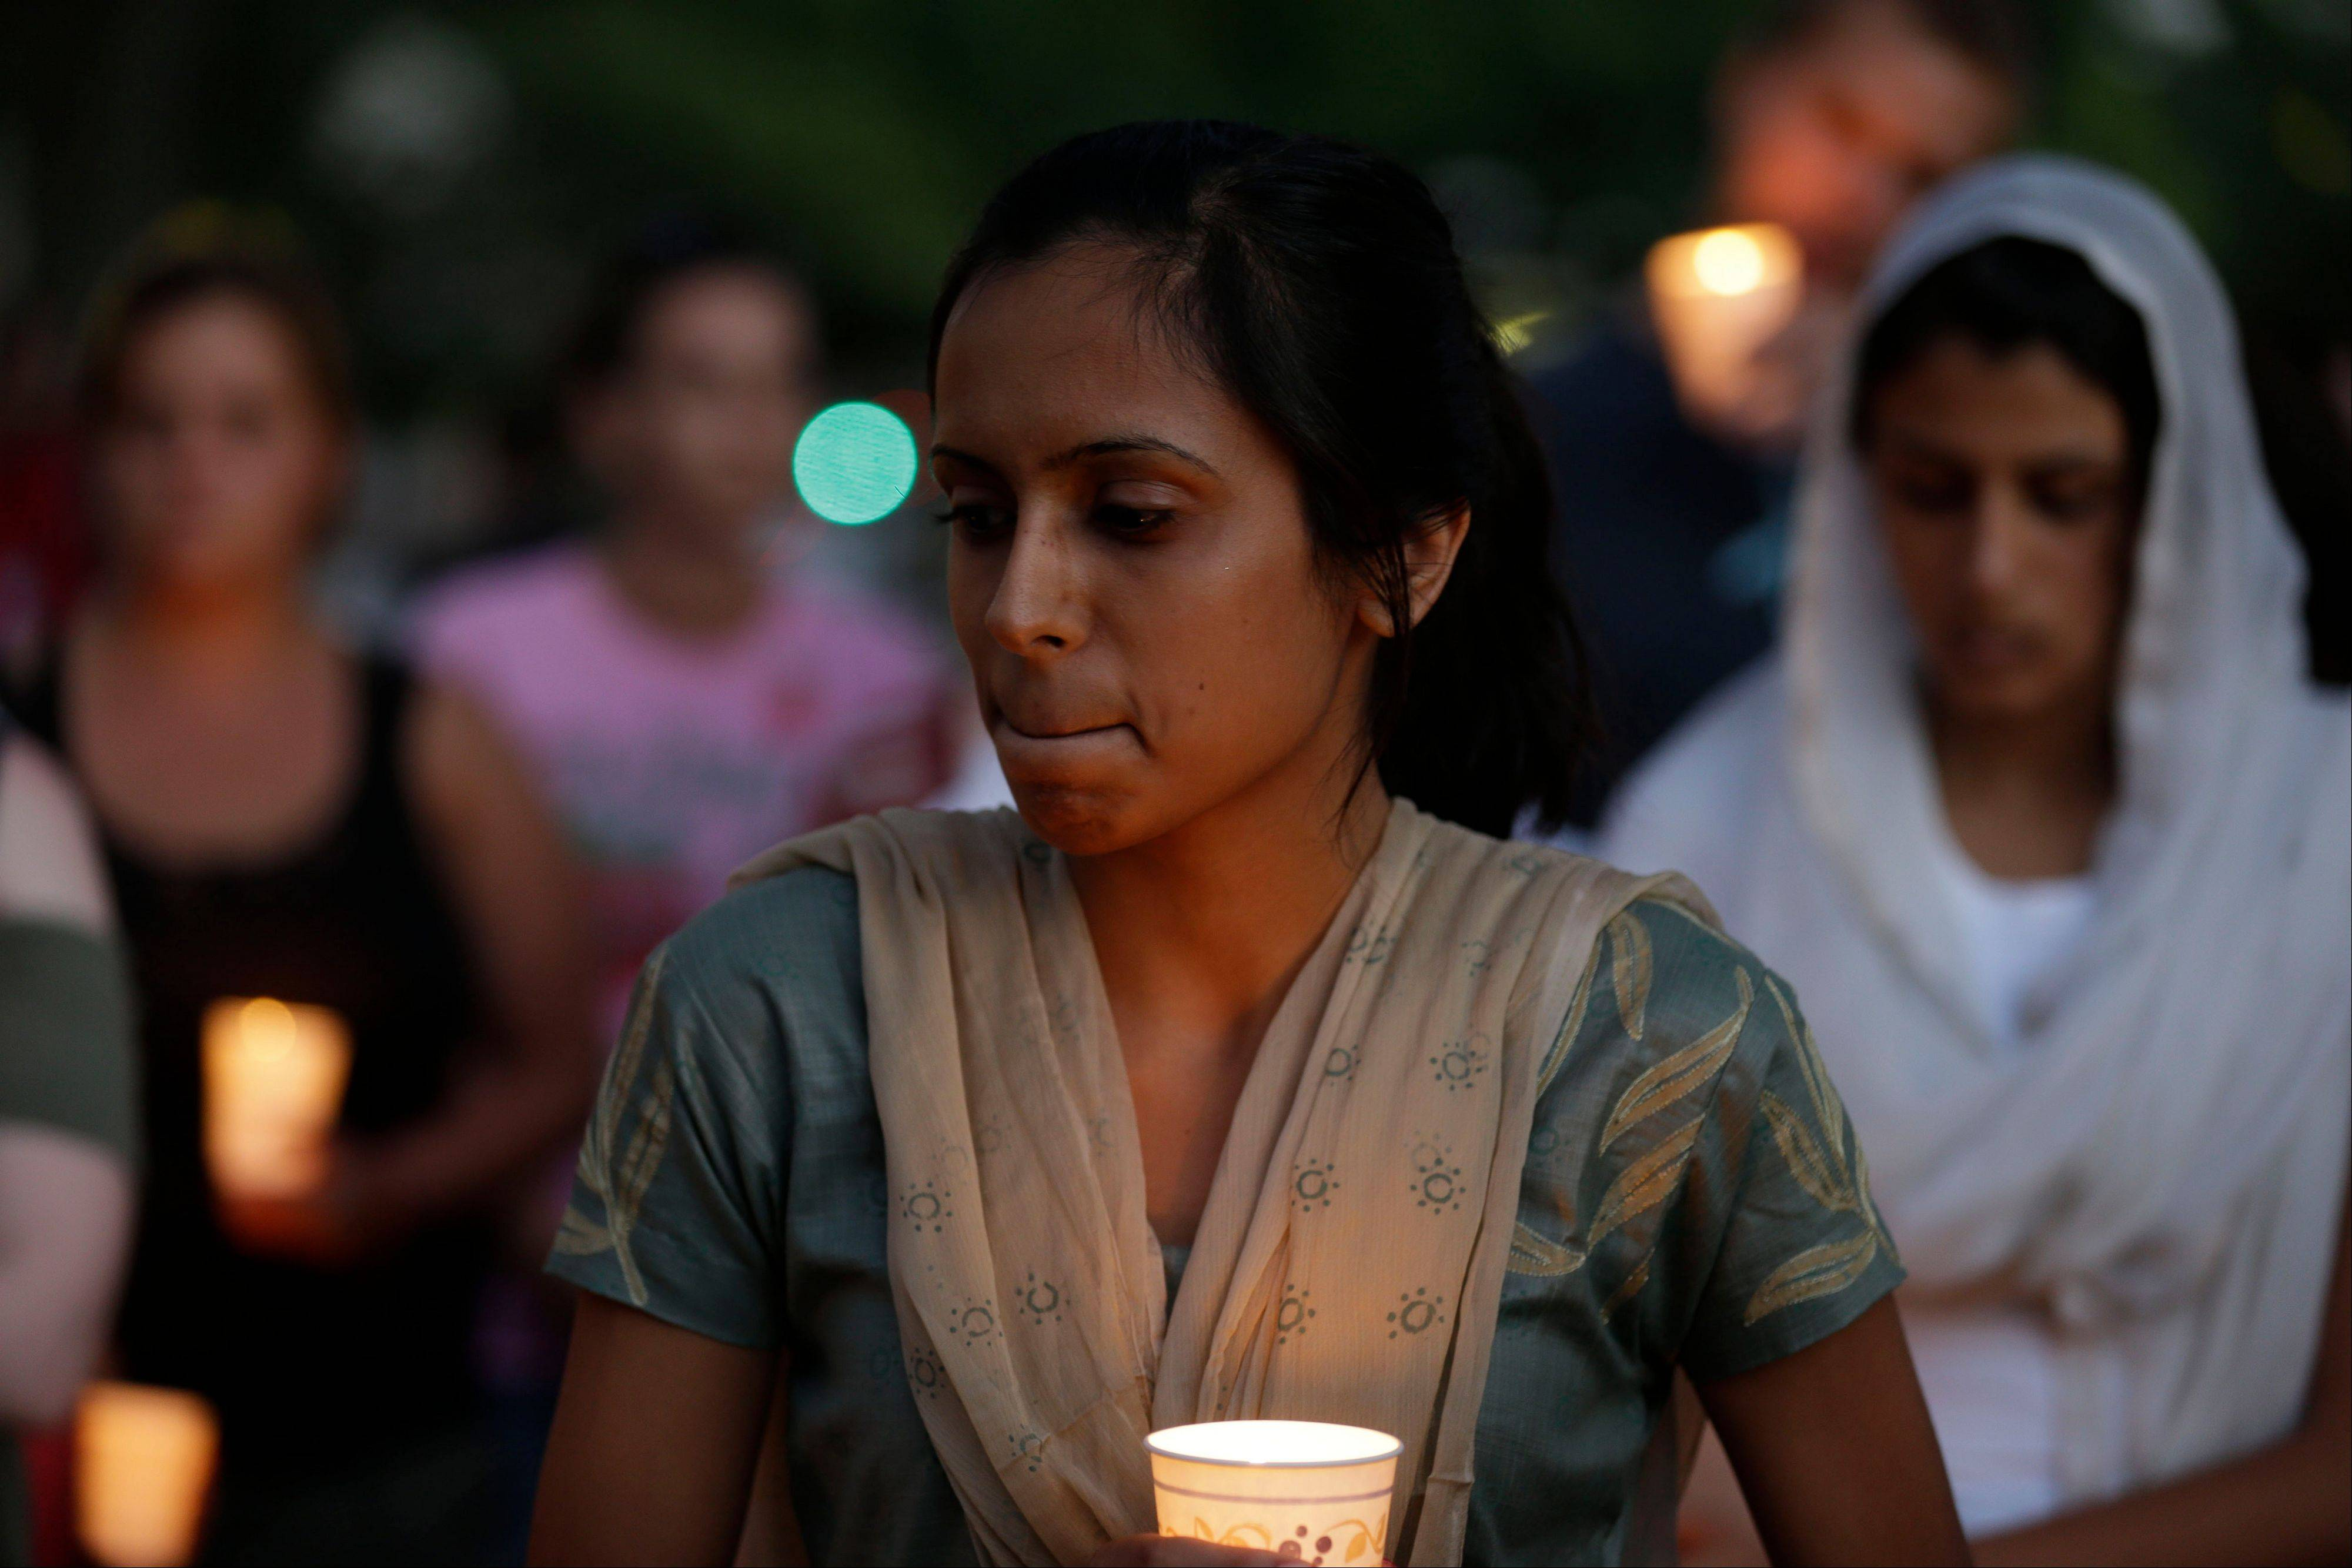 Associated Press/Aug. 5, 2012 Mourners take part in a candlelight vigil for the victims of the Milwaukee-area Sikh temple in Milwaukee.